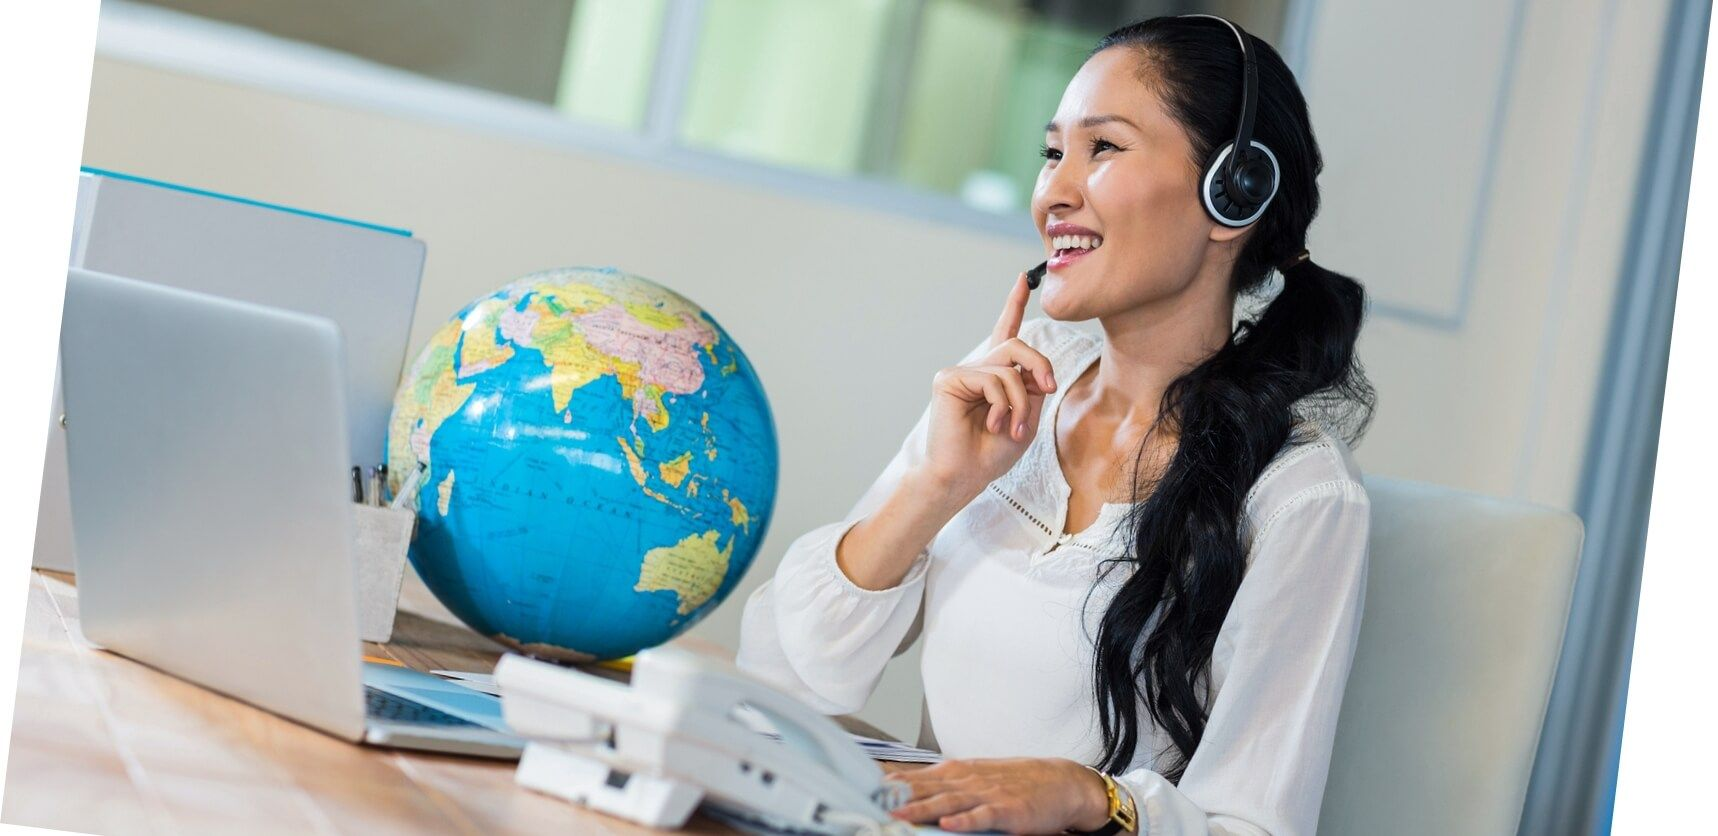 If you have expertise in the travel field, a travel counselor job could be a great way to help consumers. Learn all about the required skills!